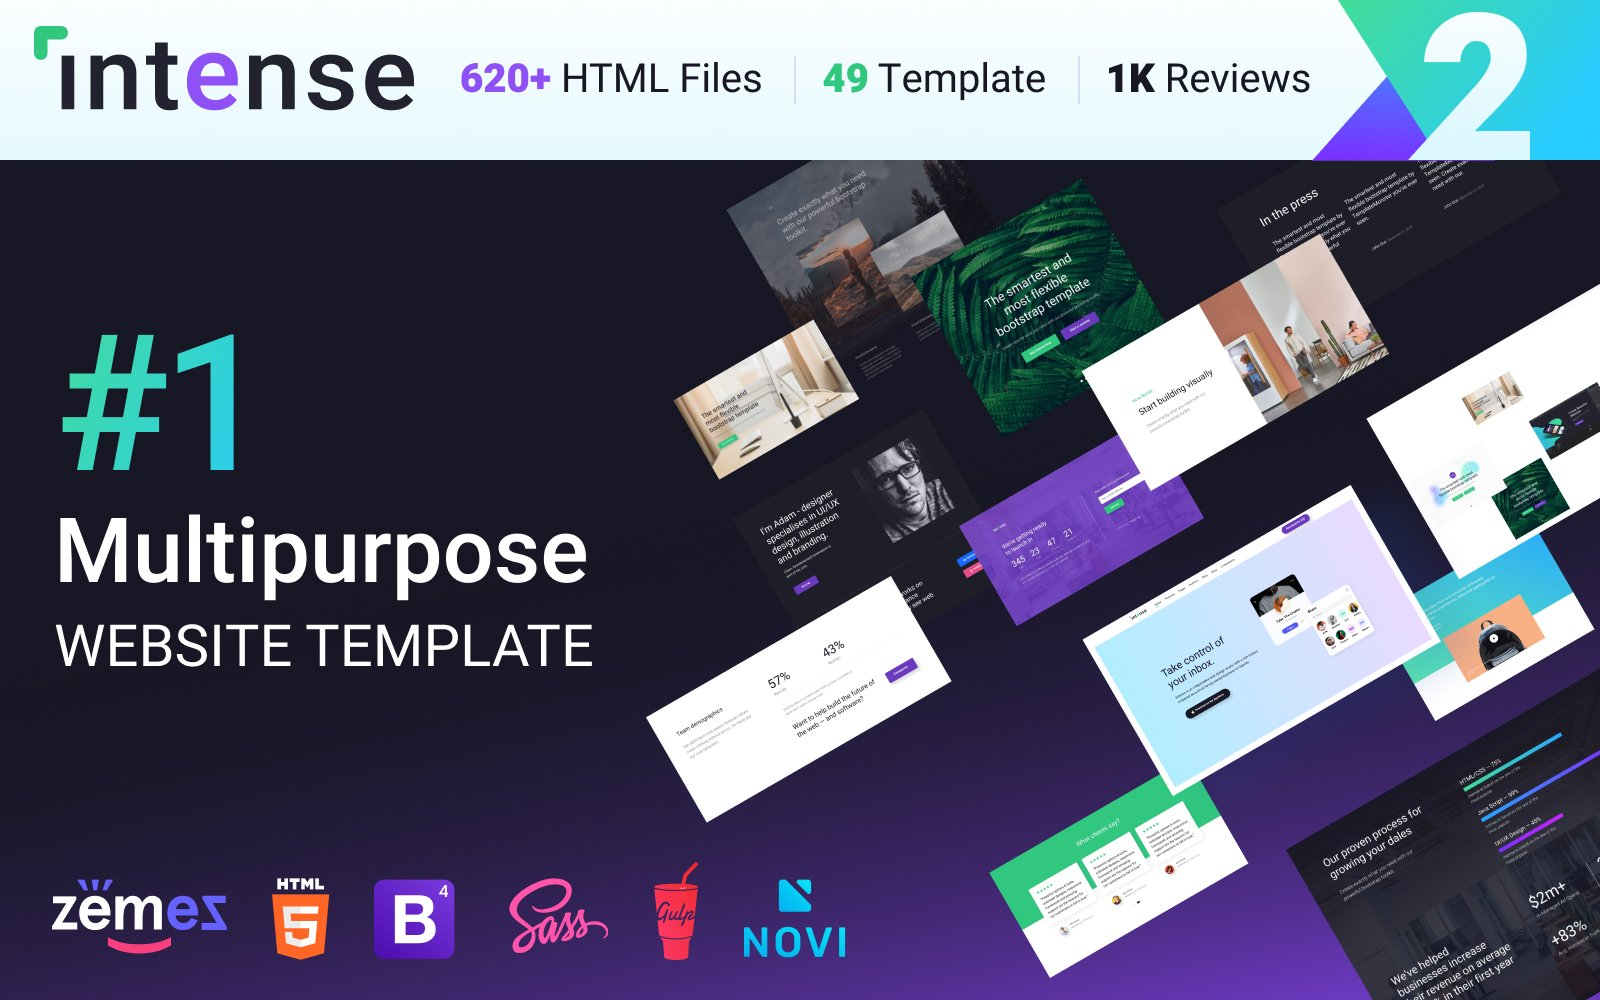 Multipurpose Website Template Intense - #1 HTML Bootstrap Template Web №58888